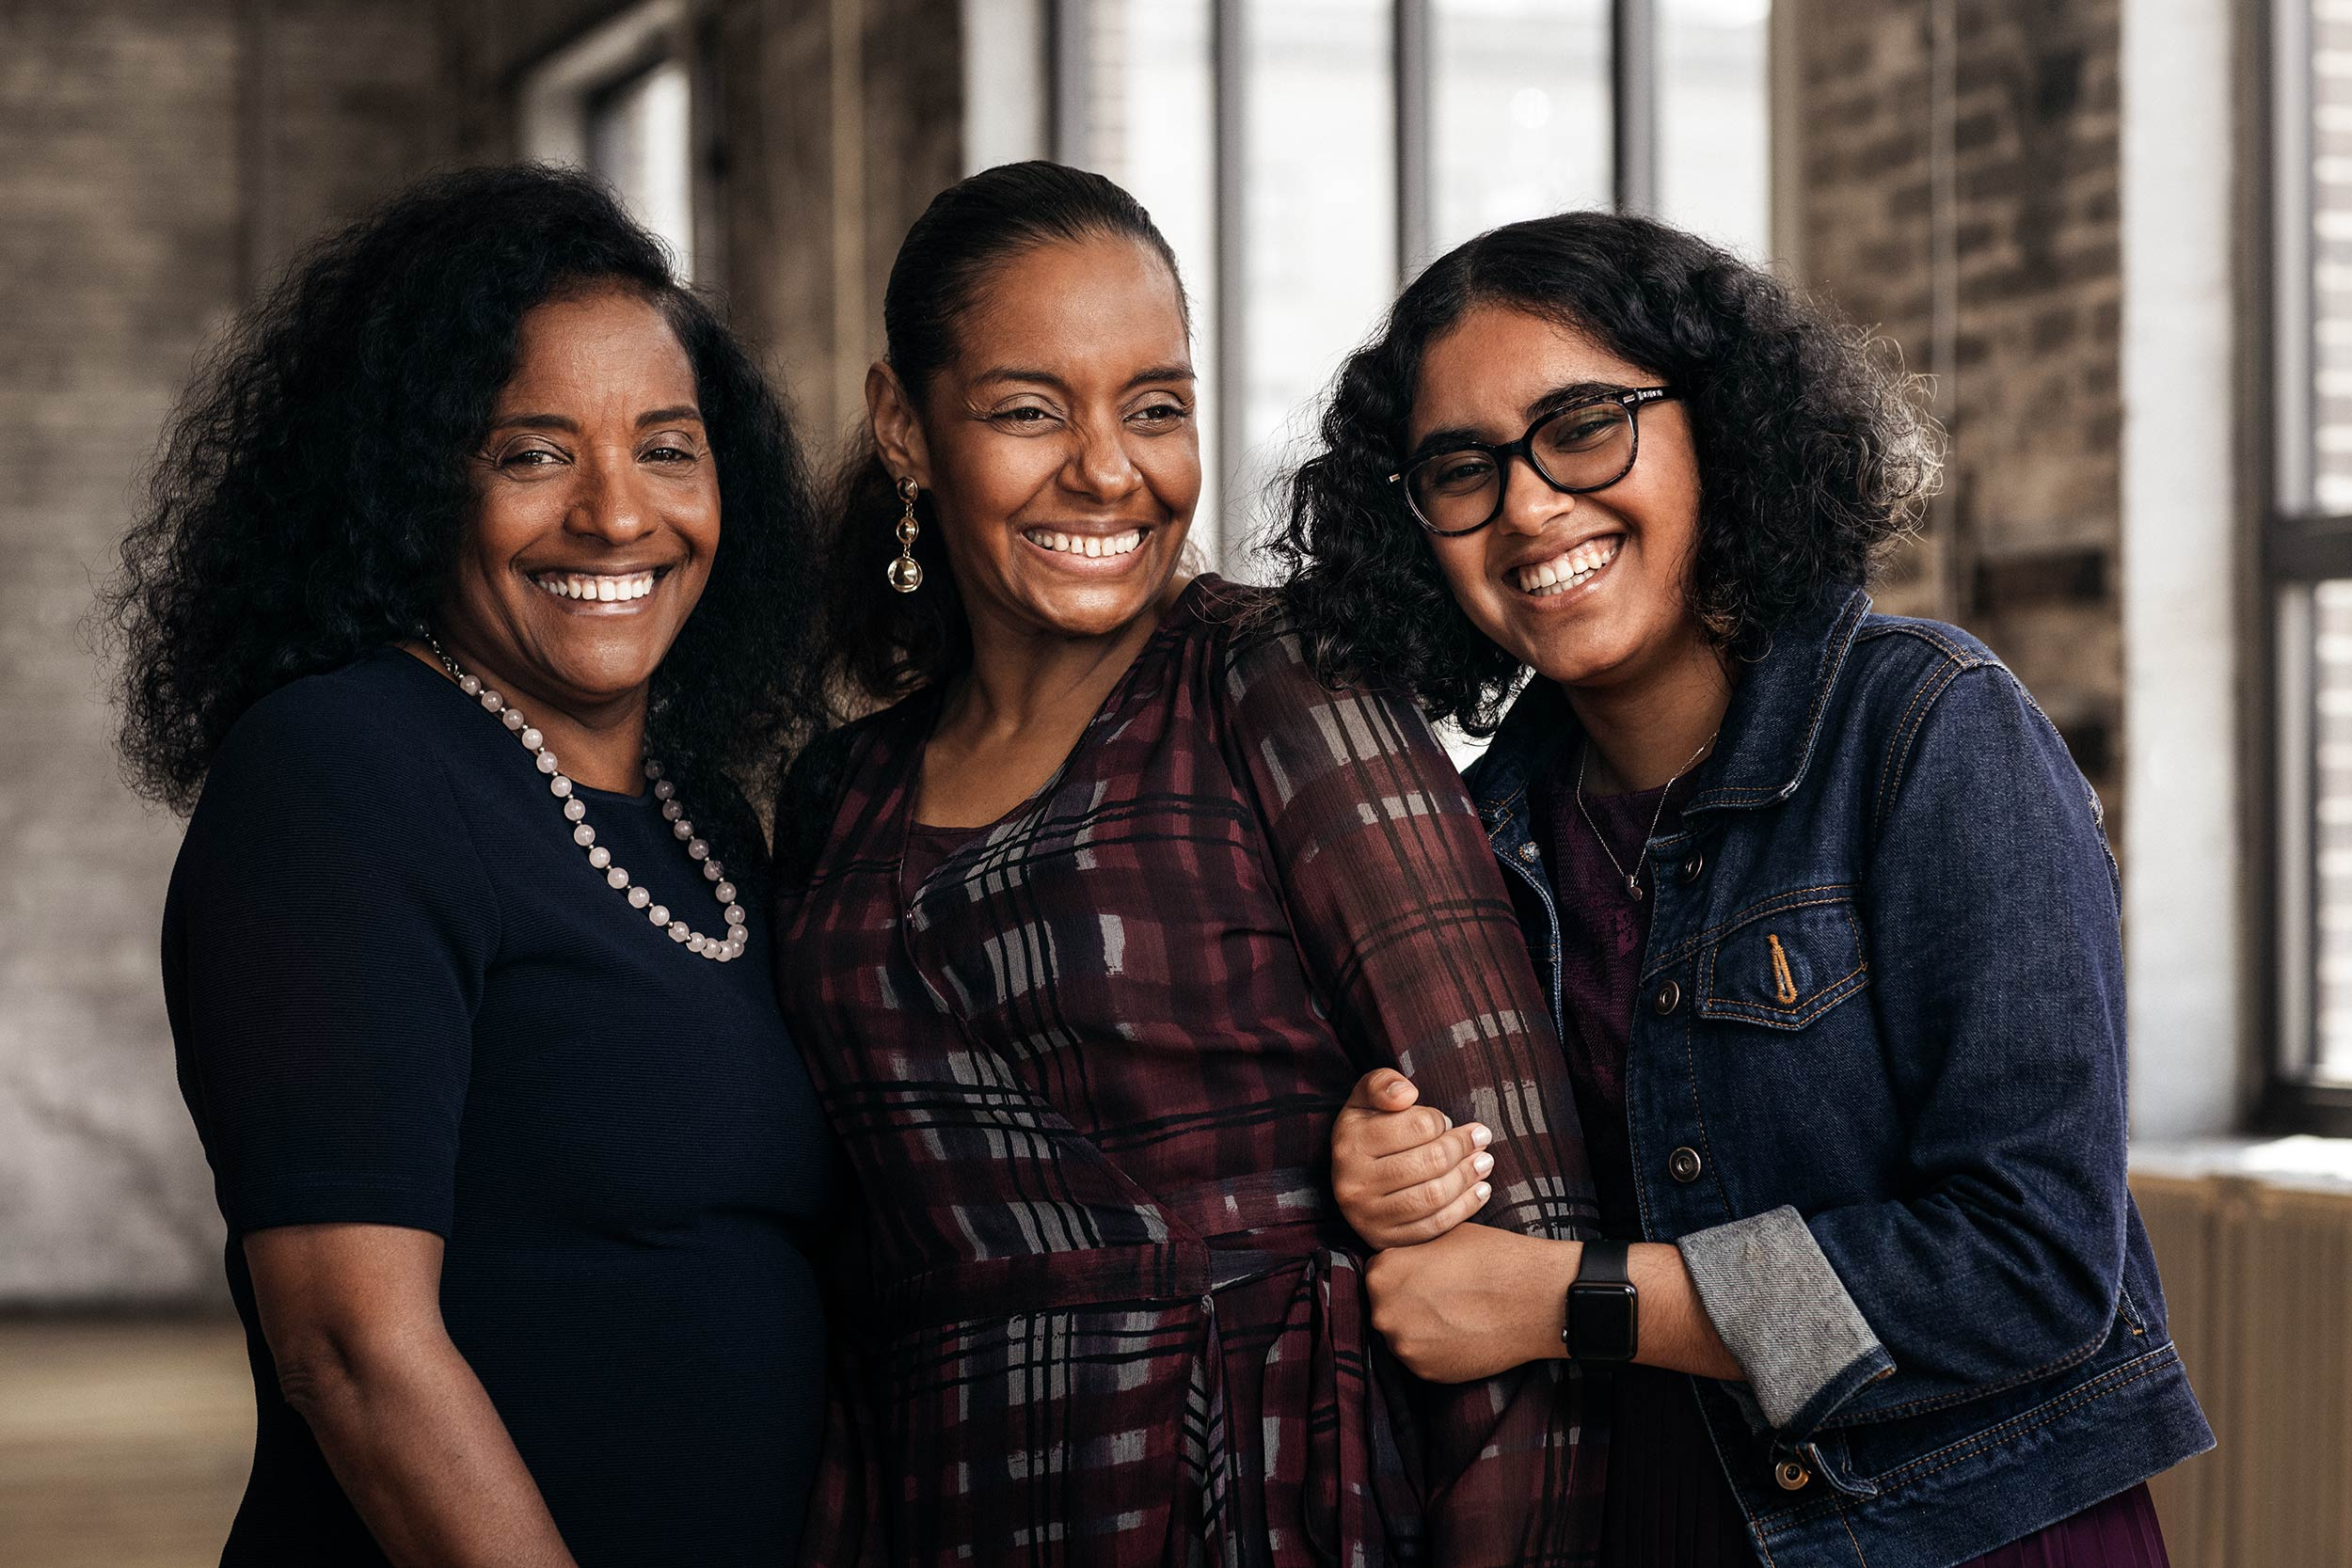 portrait_family_cors_sicklecell_mother_daughters-0151